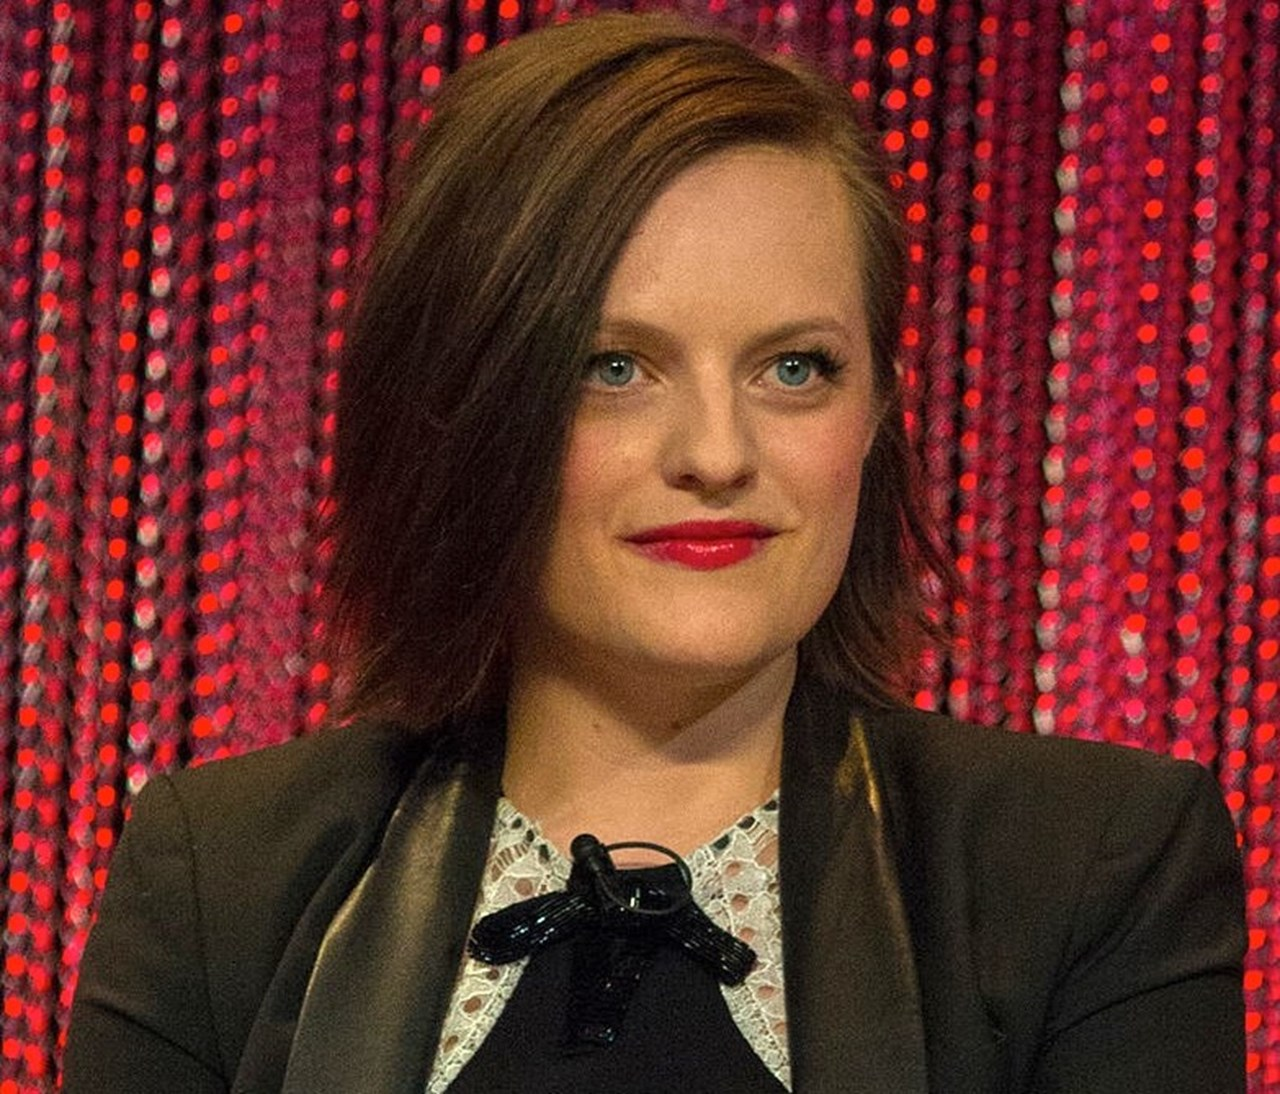 Elisabeth Moss To Play Killer Candy Montgomery In Limited Series From Mad Men Writer Entertainment Tumblr is a place to express yourself, discover yourself, and bond over the stuff you love. elisabeth moss to play killer candy